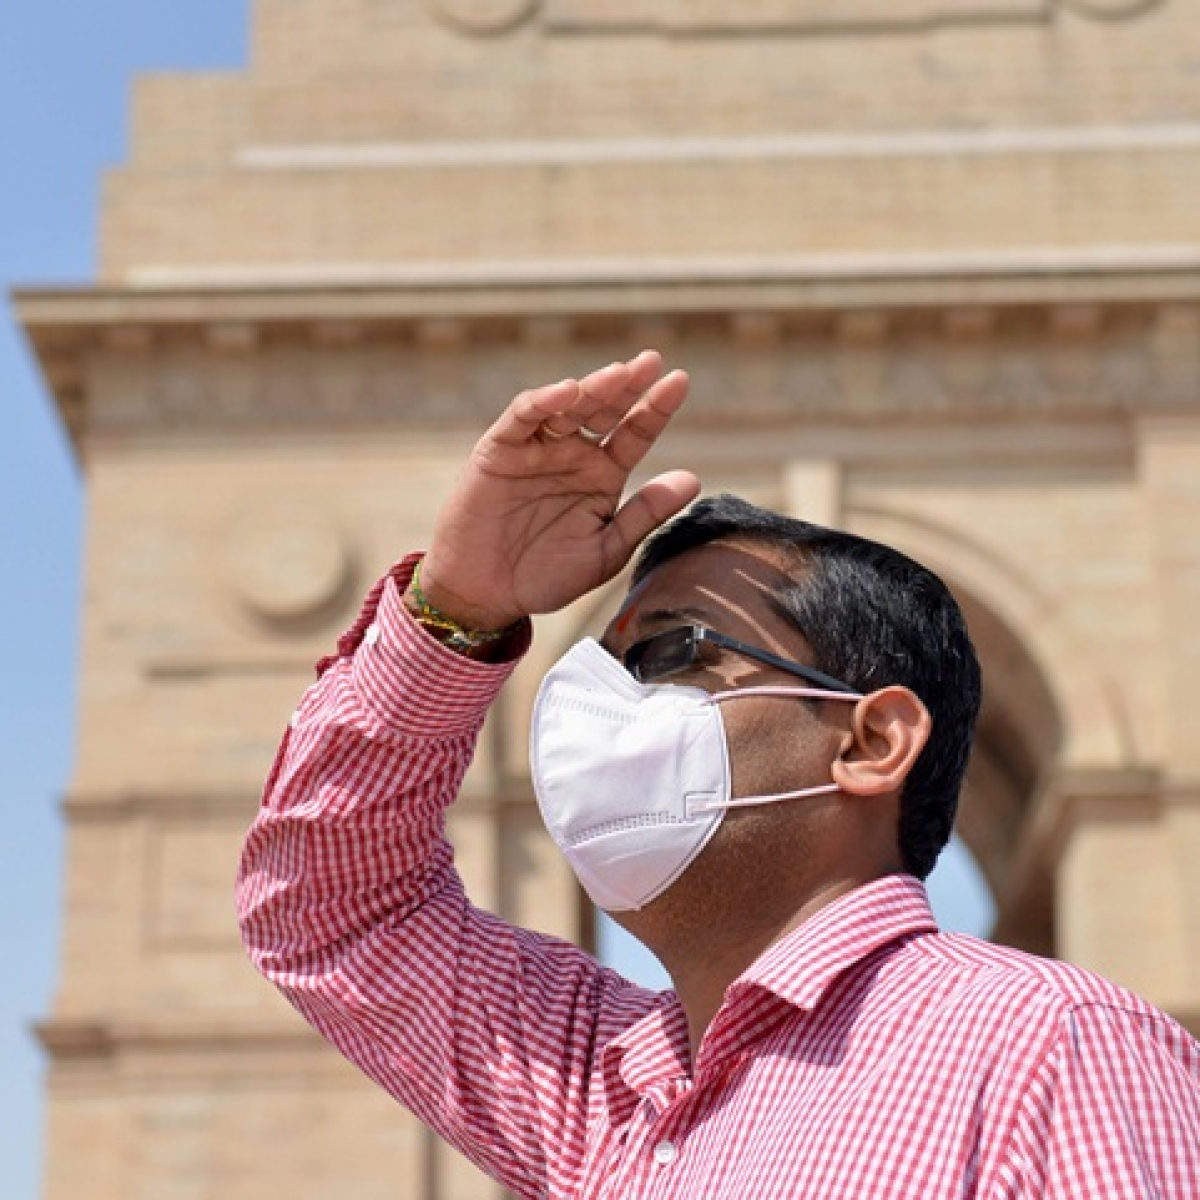 Coronavirus outbreak in India: Will hot weather kill COVID-19? Mumbai docs weigh in